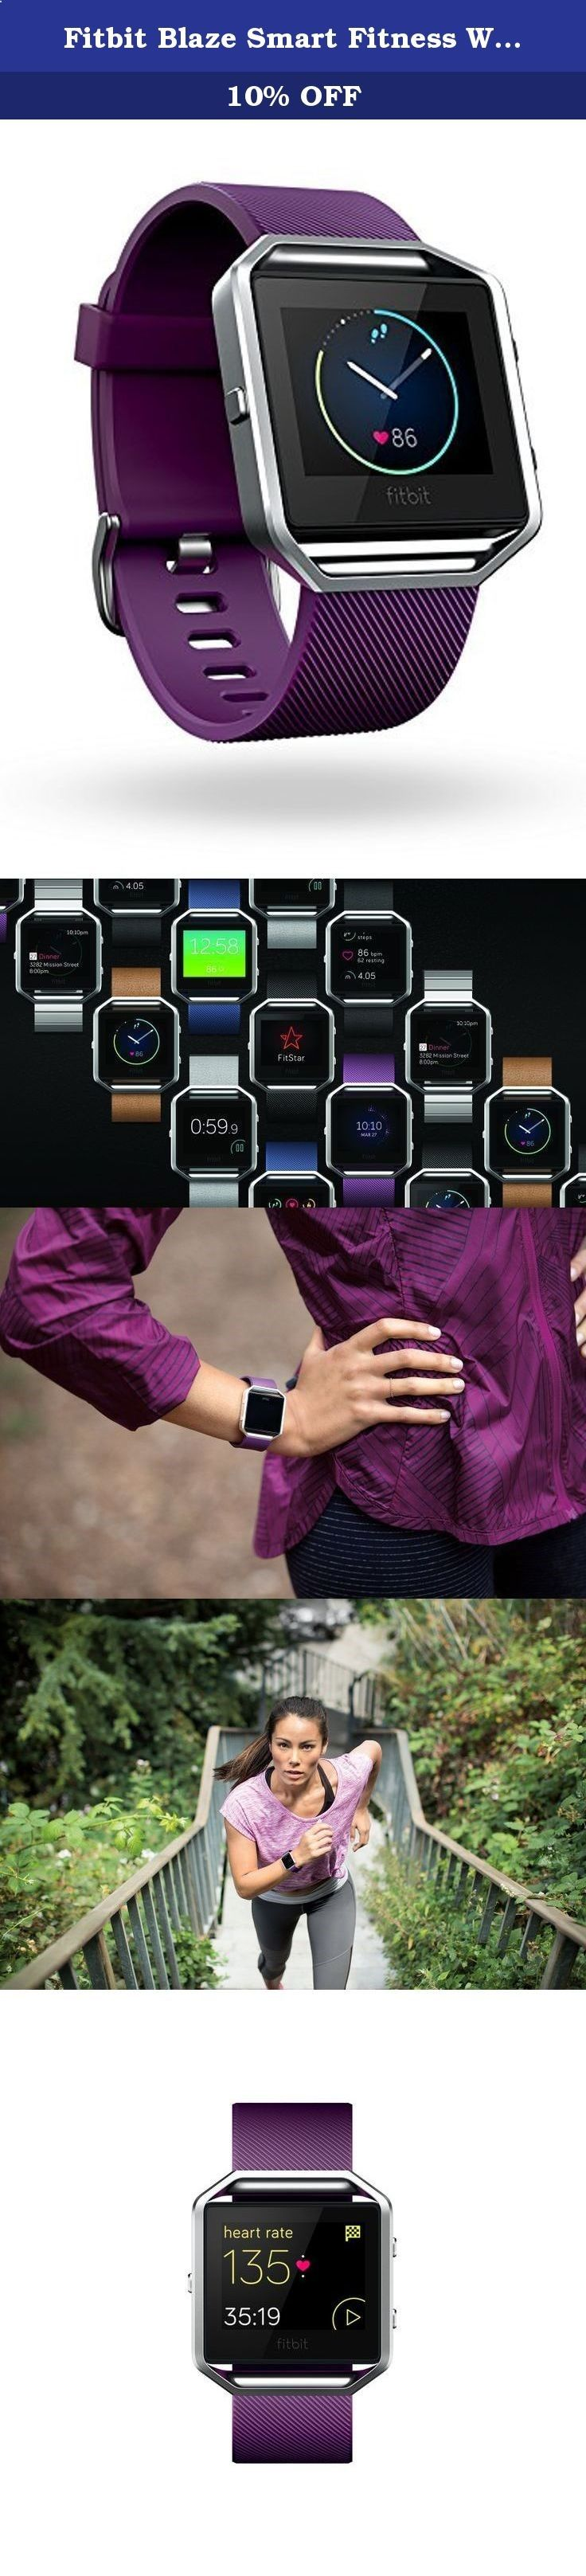 Fitbit Blaze Smart Fitness Watch, Plum, Silver, Large. Get fit in style with Fitbit Blaze—a smart fitness watch that helps you maximize every workout and every day. With advanced technology in a versatile design, this revolutionary device is built to track your workouts, monitor your performance stats, and gauge your progress. PurePulse continuous heart rate and multi-sport modes enhance every exercise, while next-generation features like Connected GPS and FitStar workouts on your wris...